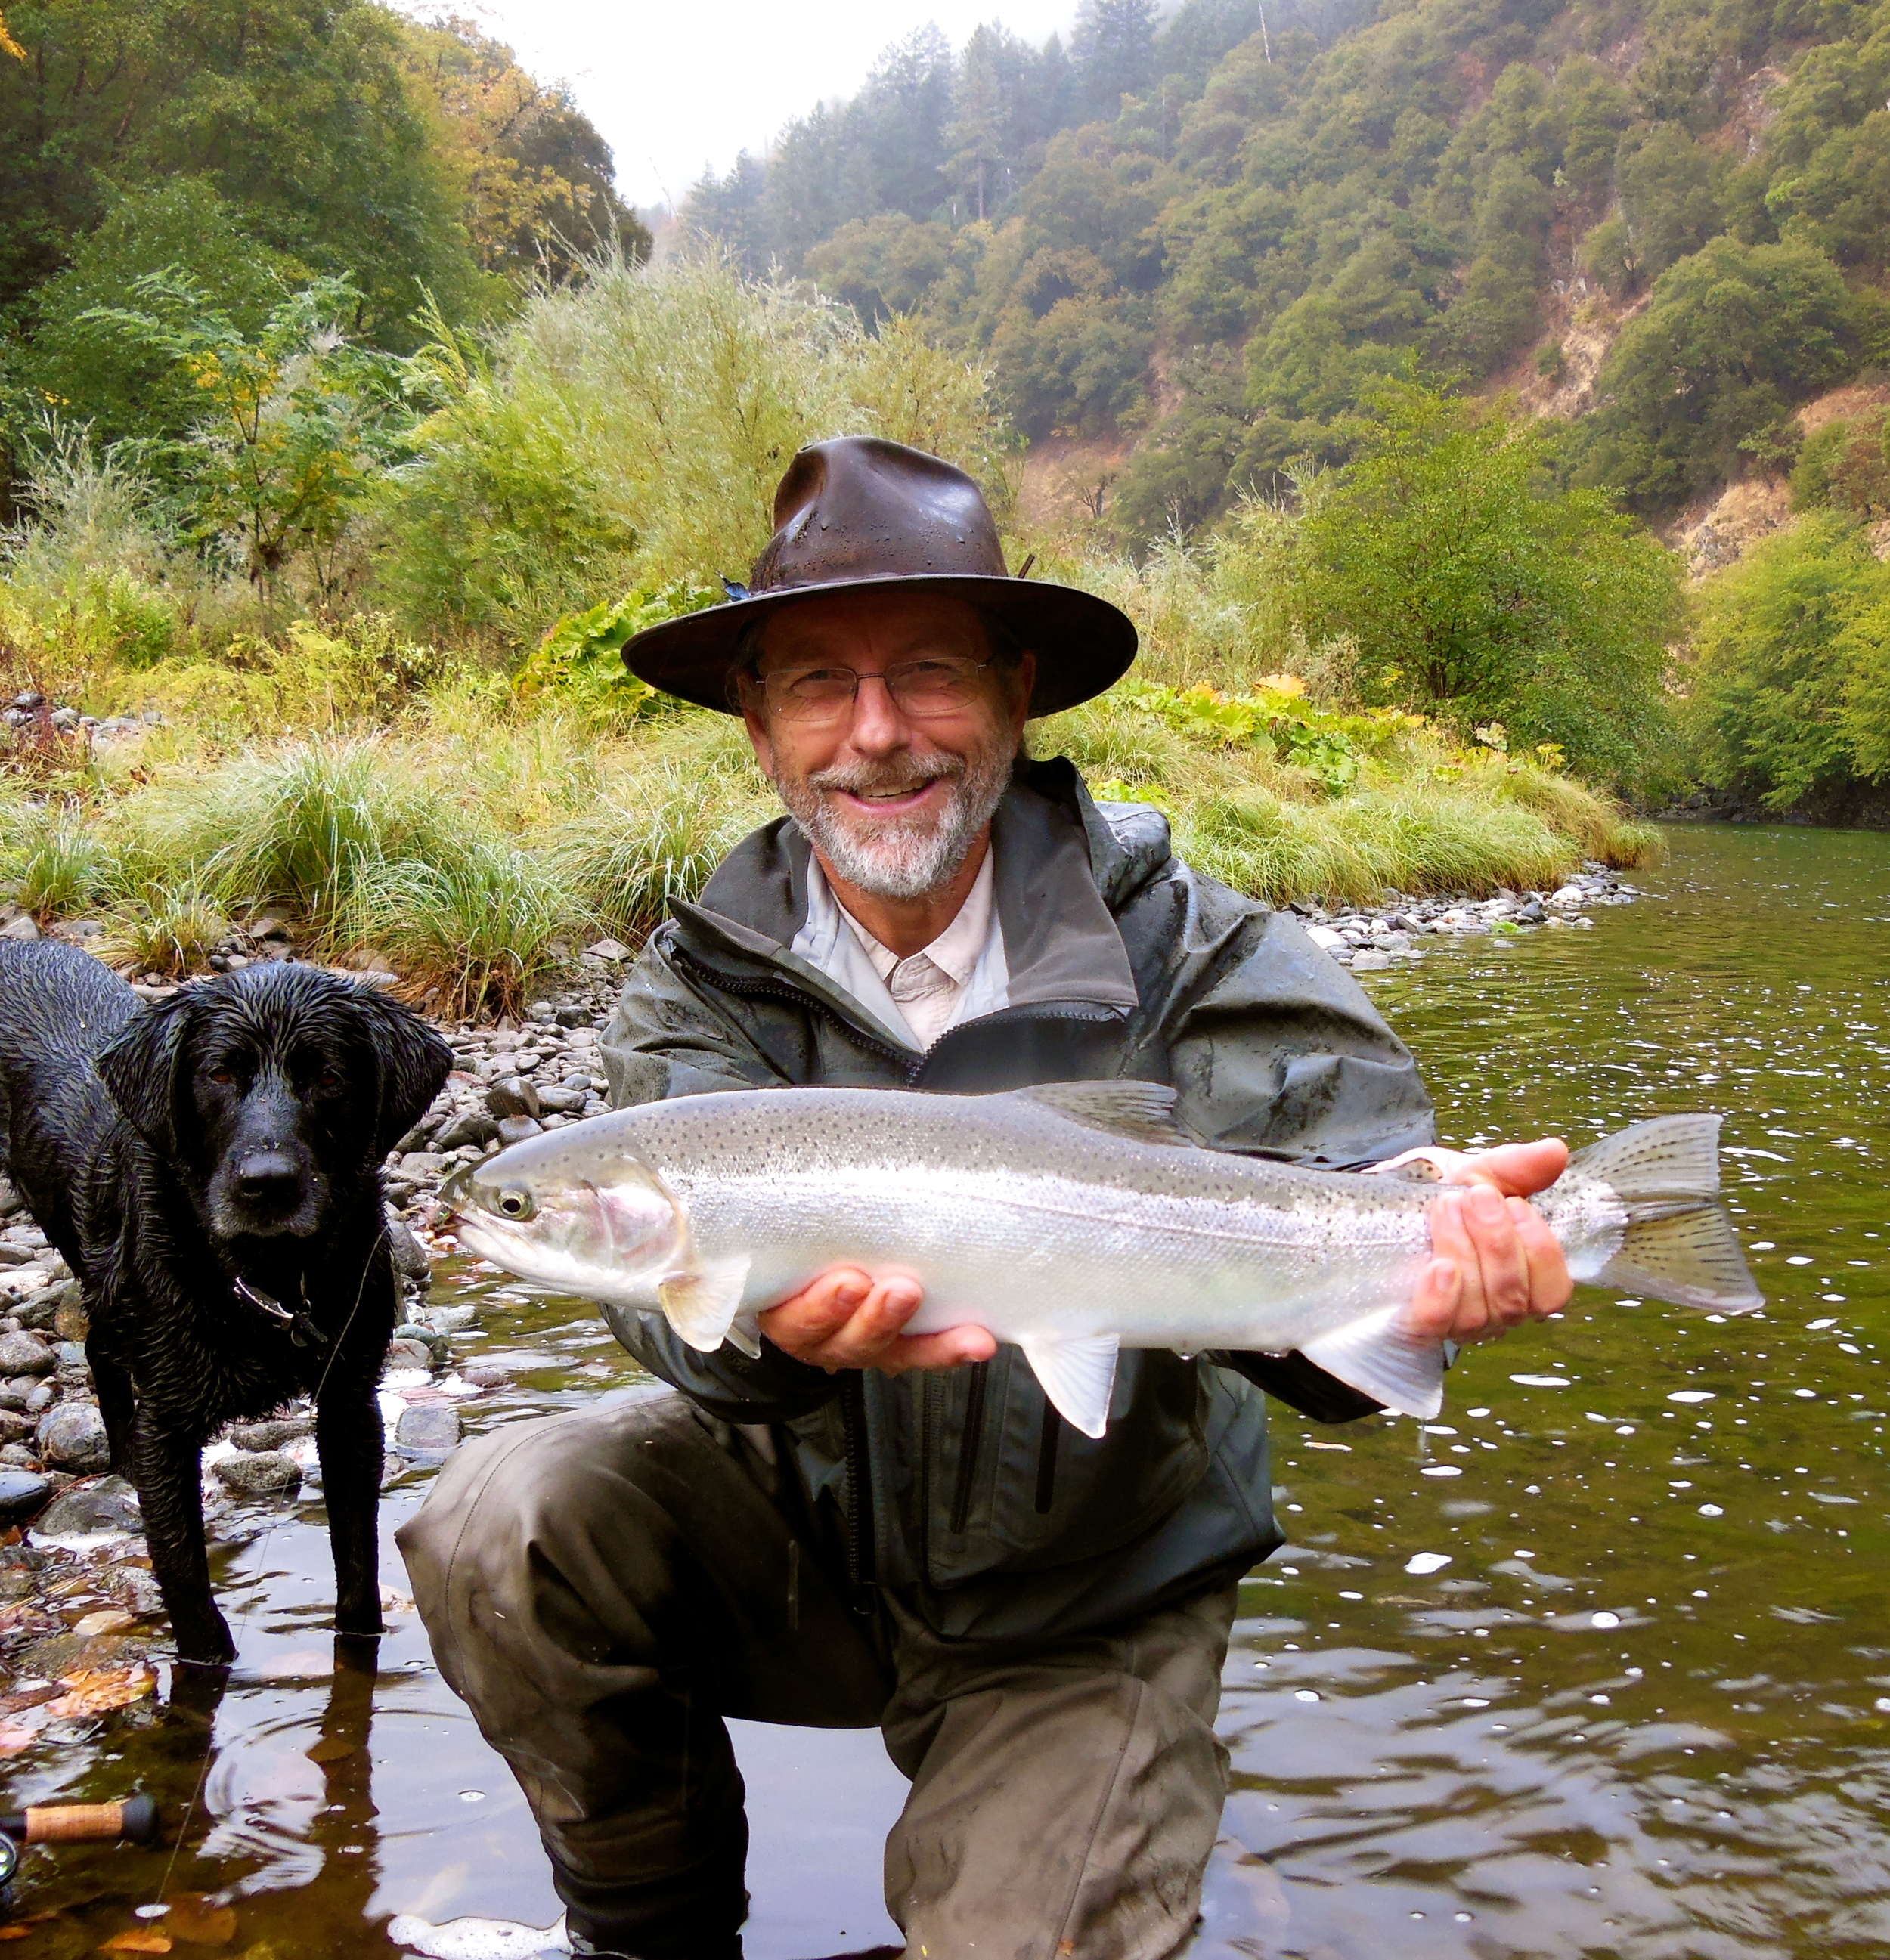 """Arturo Budnik, back from Chile with a pretty wild hen that ripped. Probably one of the coolest fish of the year for me, she came out of the water less than a foot deep. This was one of 11 Arturo saw to his fly in two days. """"It's the cheese"""" Arturo Budnik."""